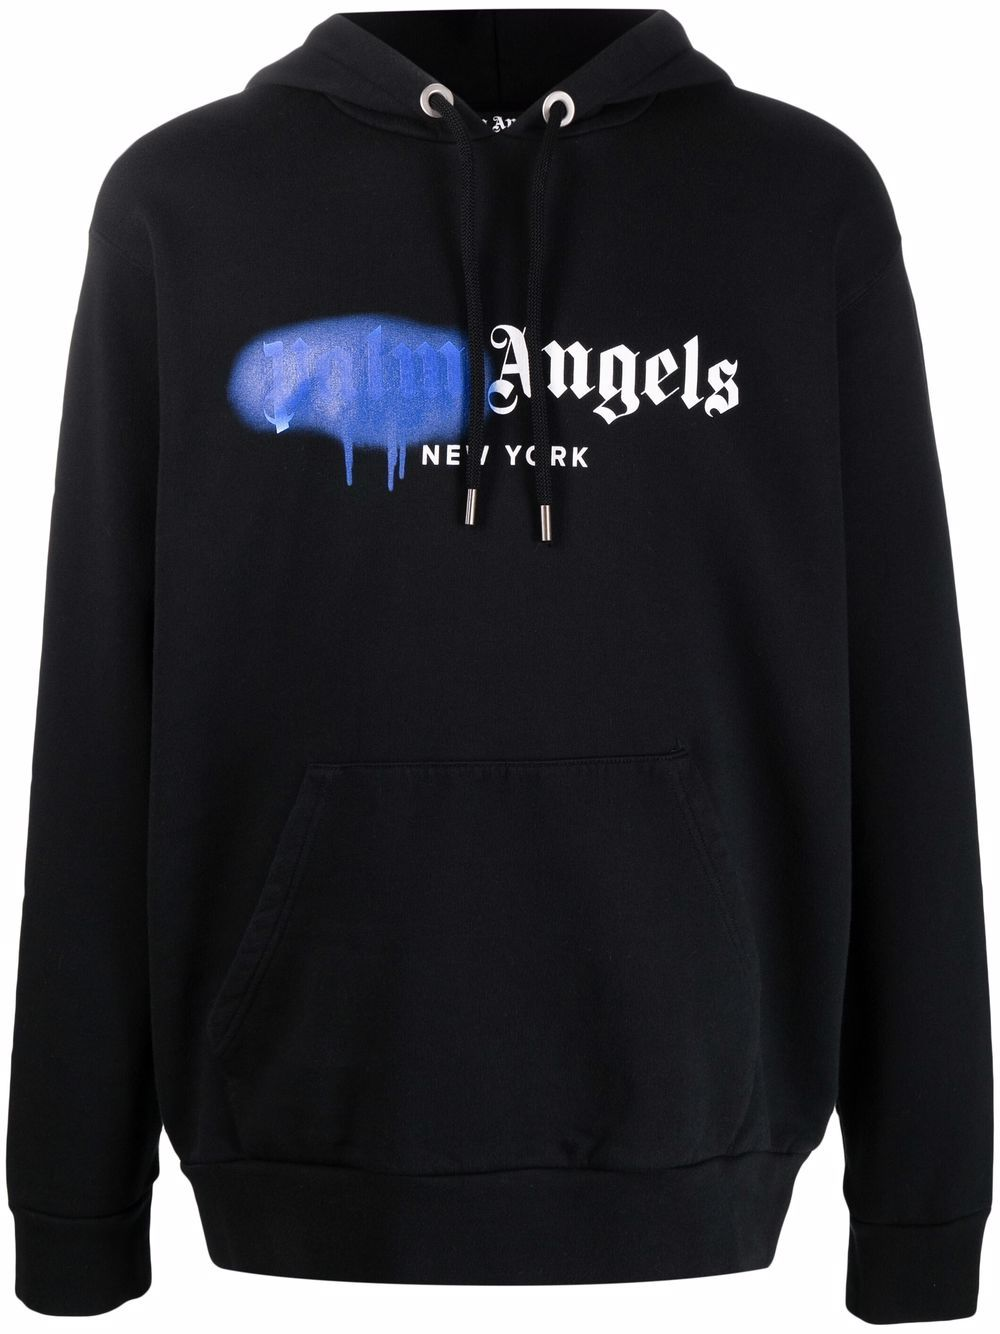 PALM ANGELS New York Sprayed Hoodie